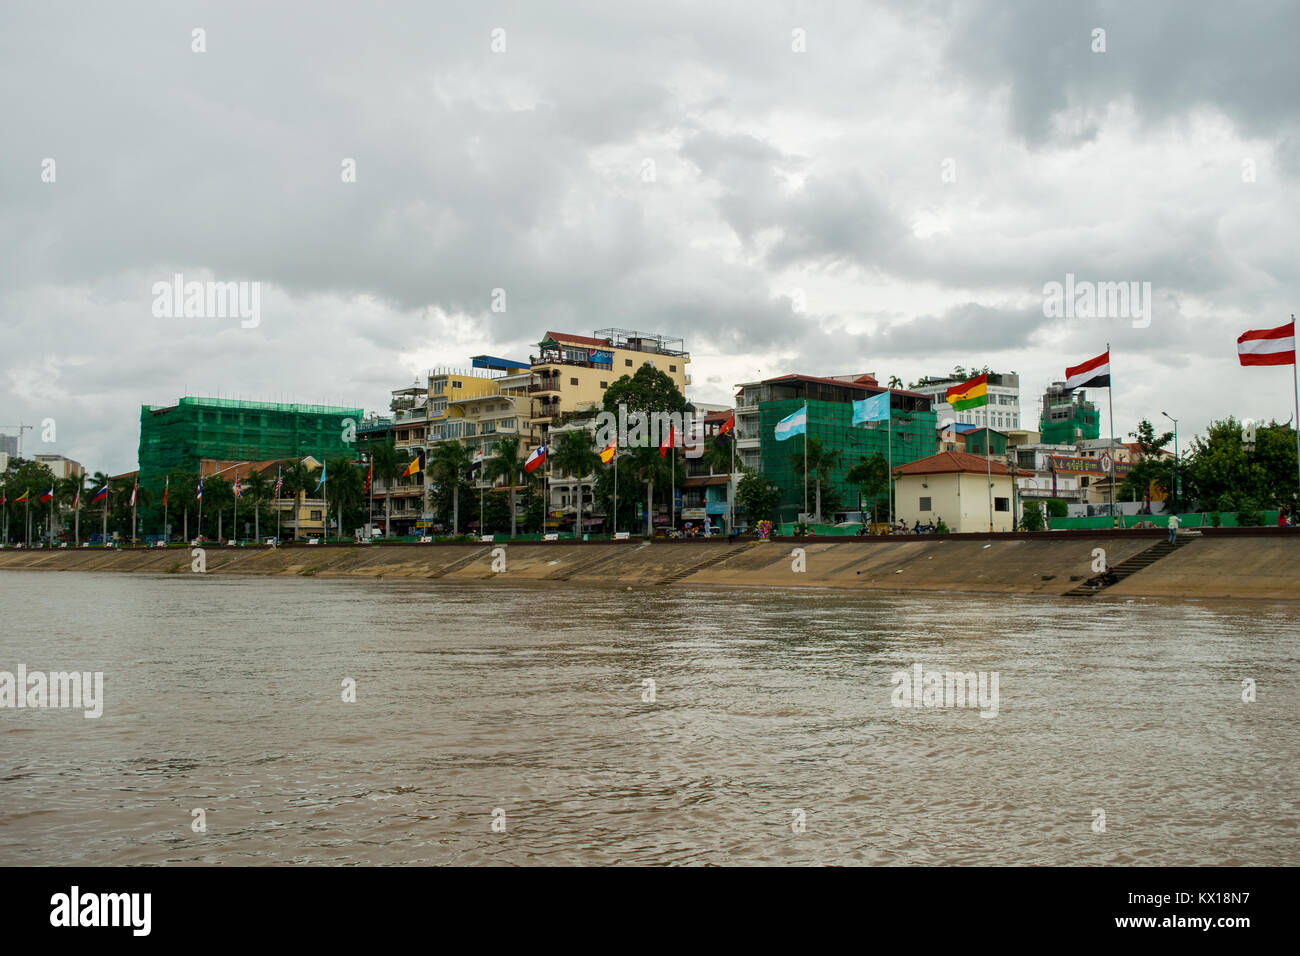 Globalisation example. A set of international flags of different countries flying on Tonle Sap riverfront Sisowath - Stock Image